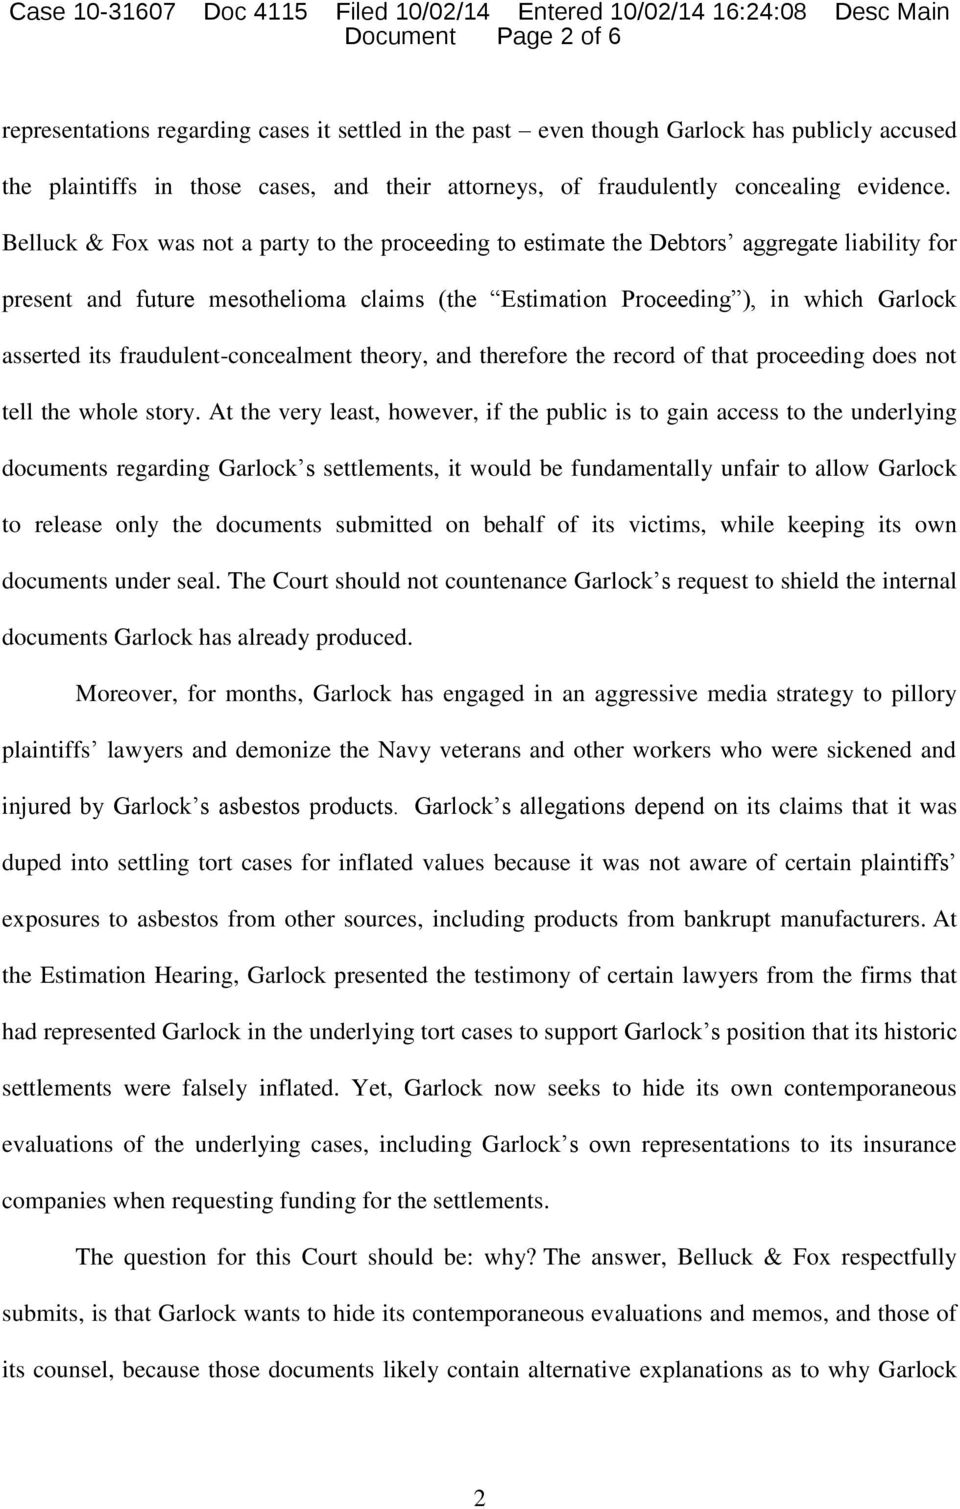 Belluck & Fox was not a party to the proceeding to estimate the Debtors aggregate liability for present and future mesothelioma claims (the Estimation Proceeding ), in which Garlock asserted its